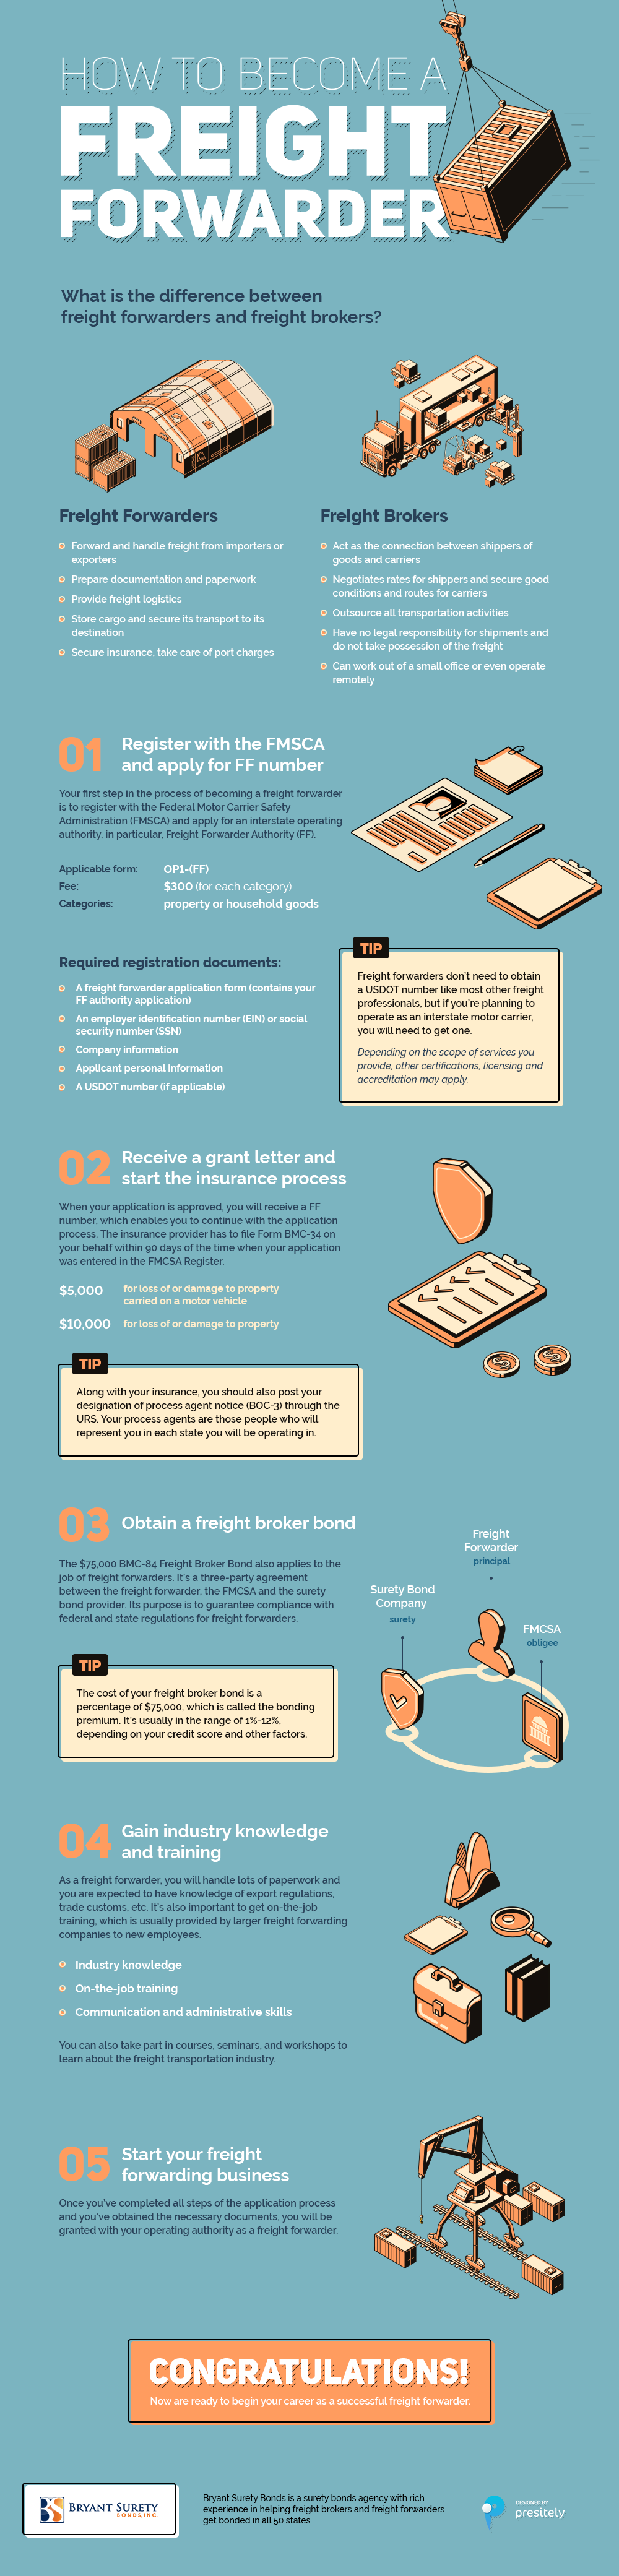 how to become a freight forwarder infographic